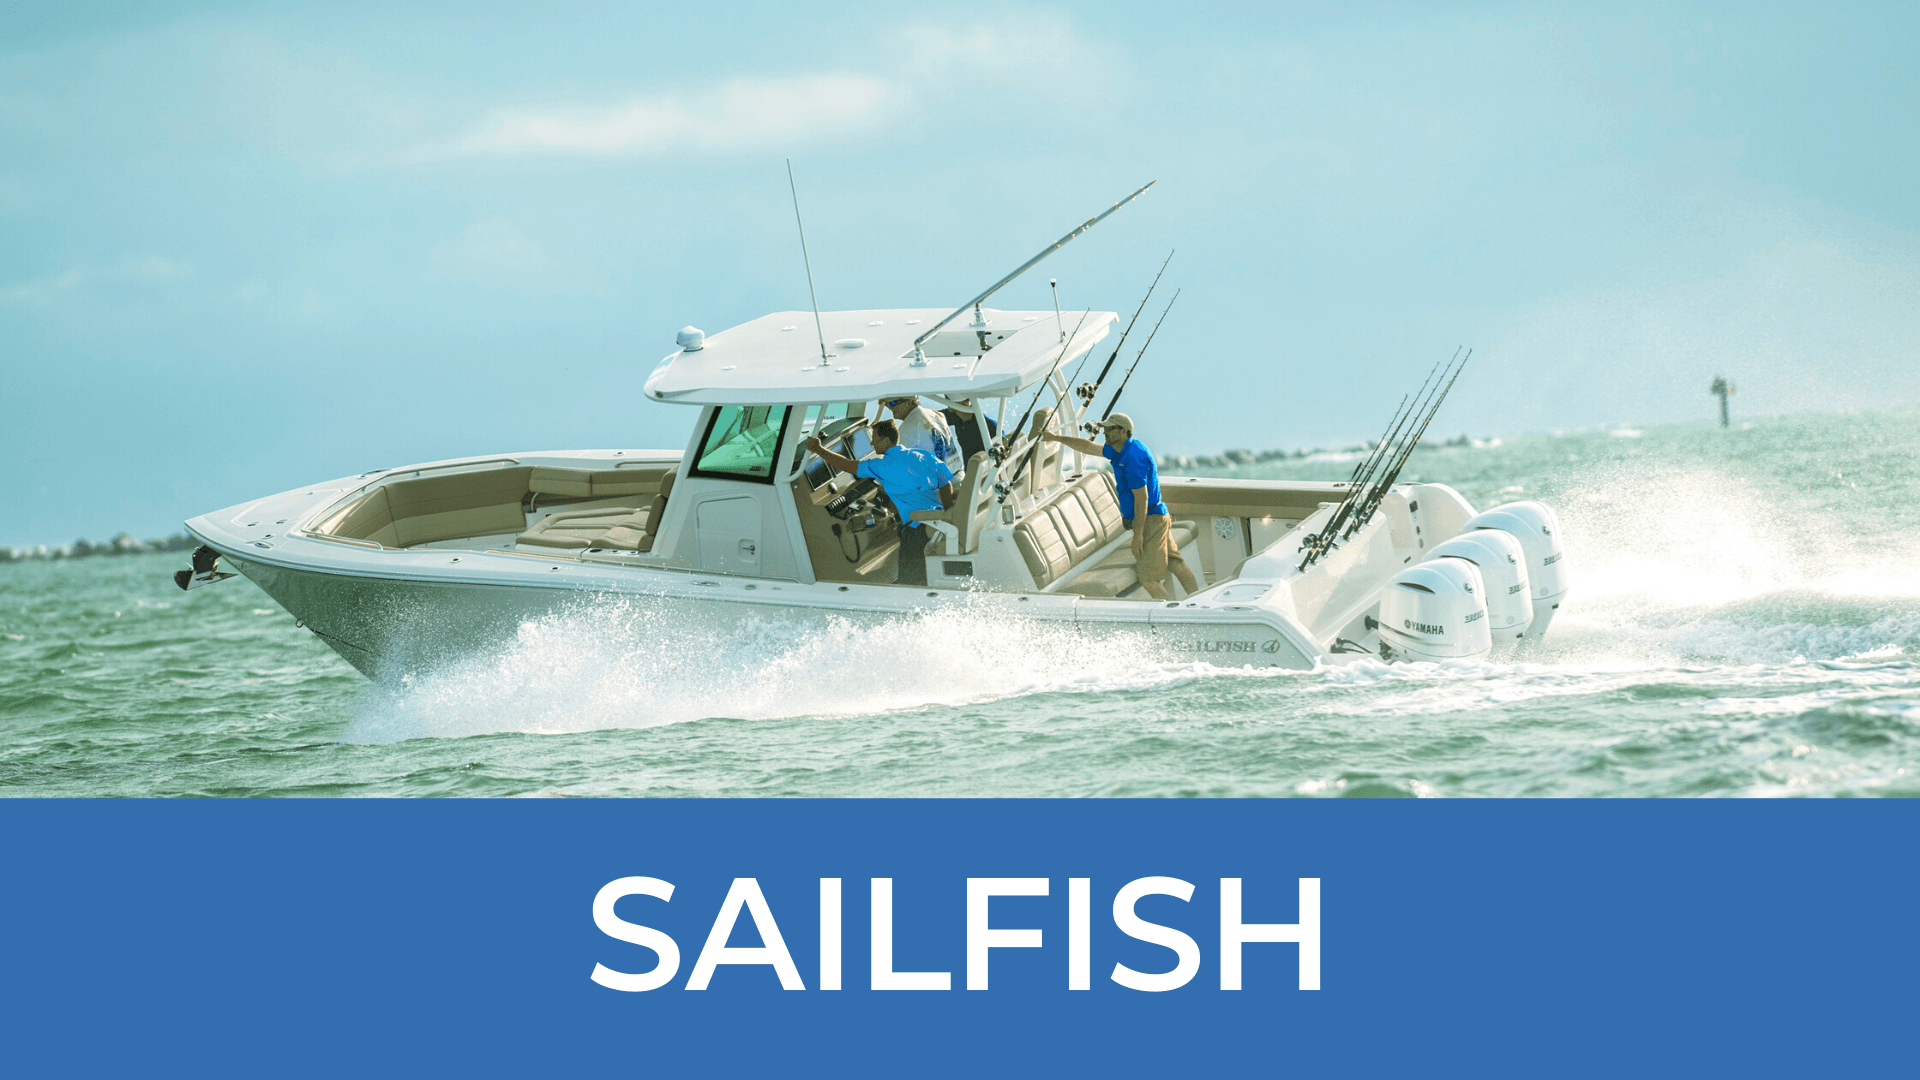 sailfish-cta